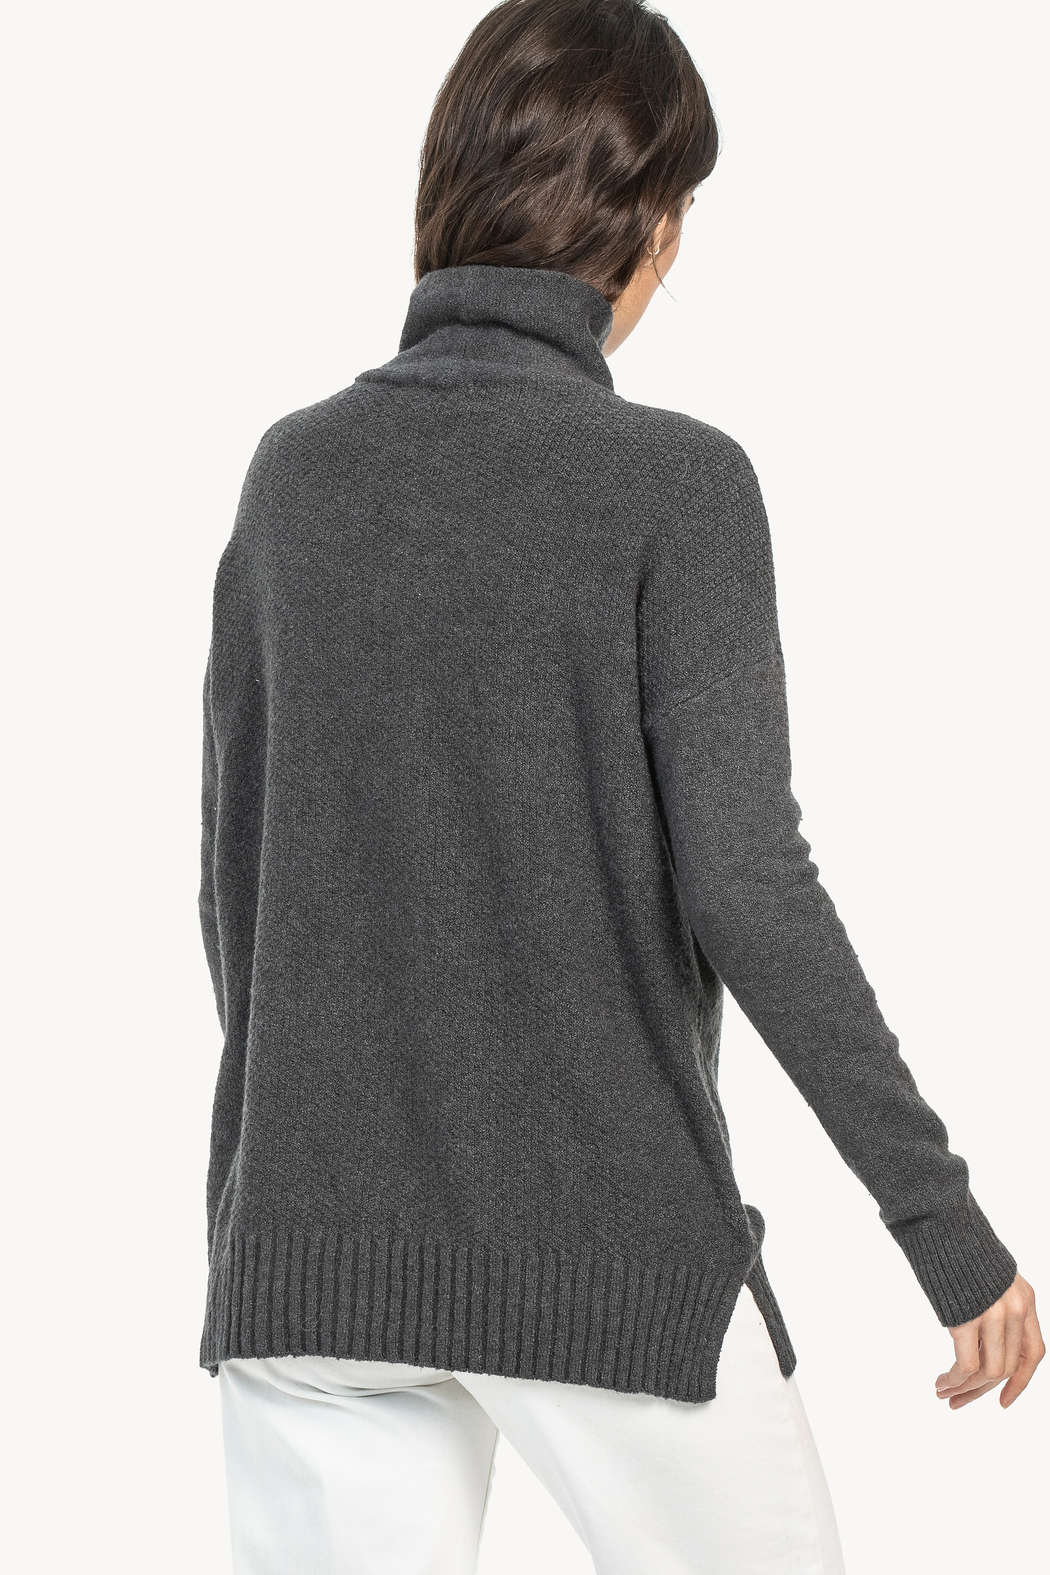 Lilla P Cable Turtleneck Sweater - Front Full Image